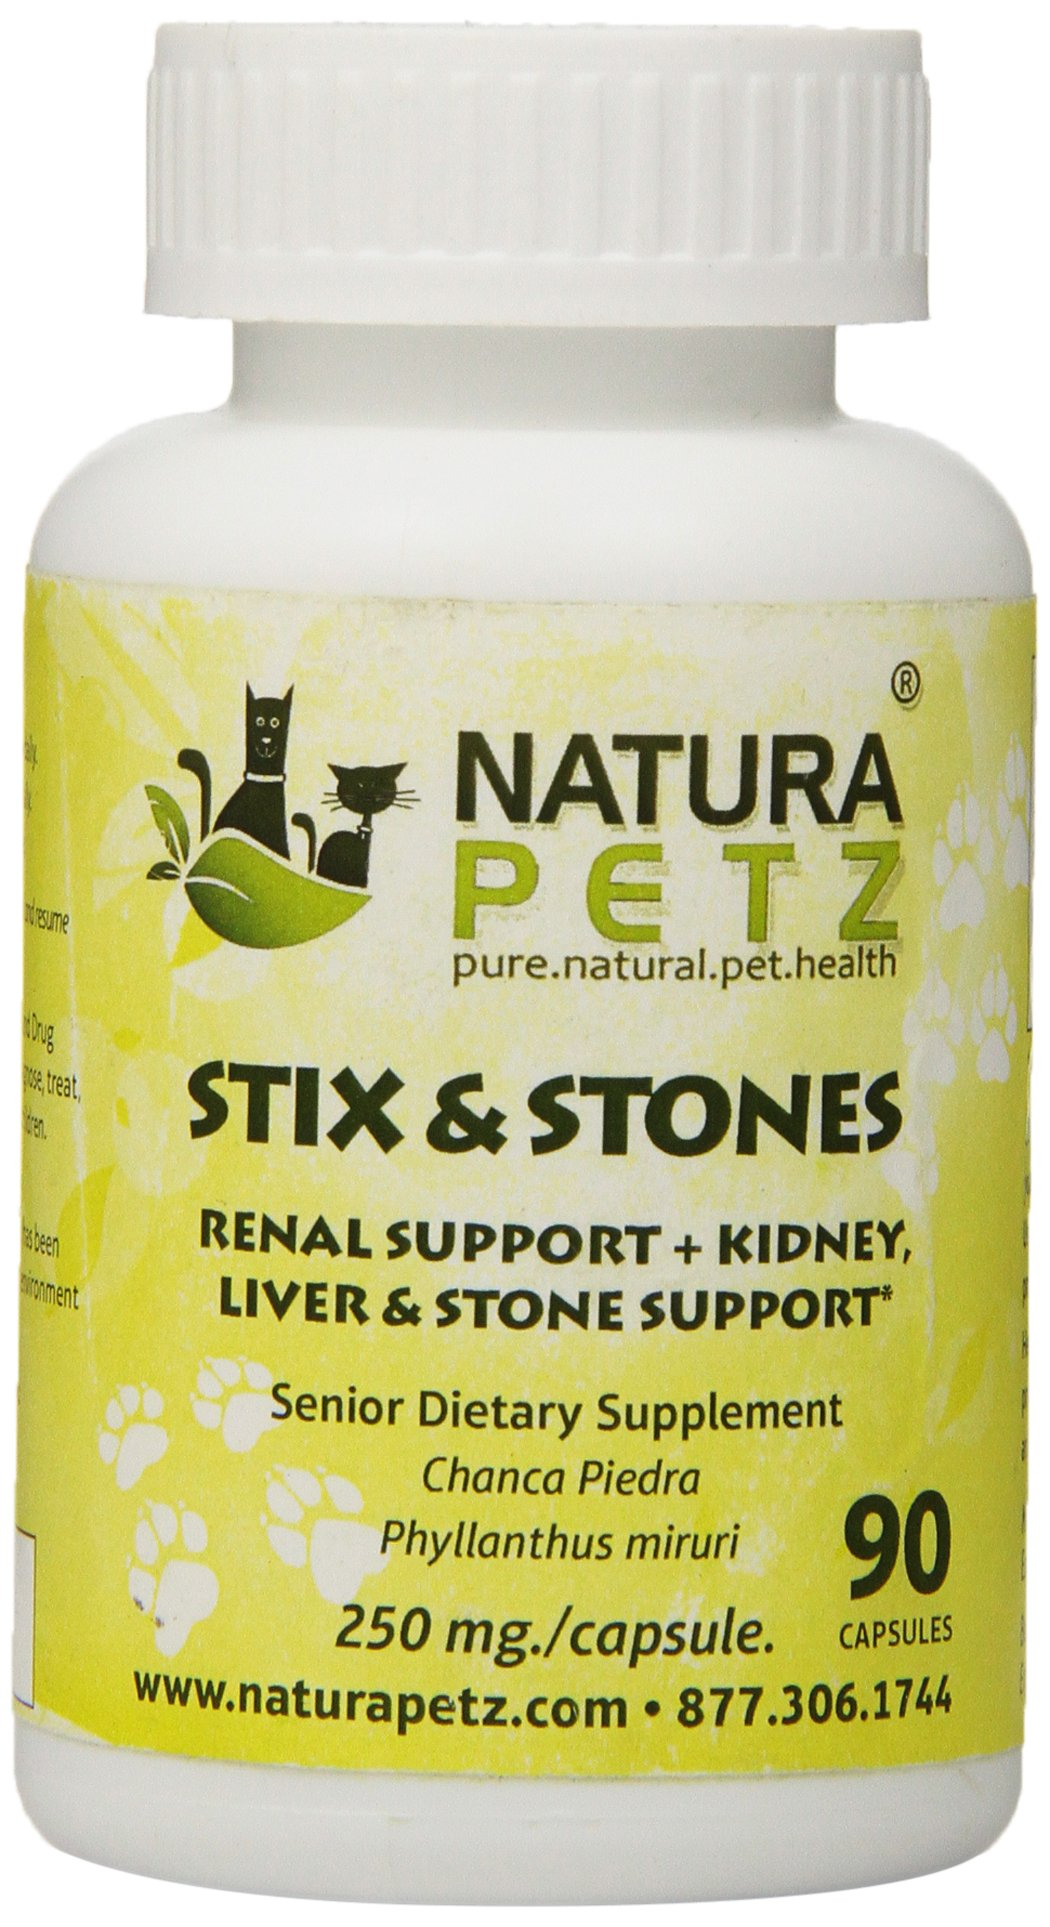 Natura Petz Stix and Stones Renal Support for Senior Pets, Kidney, Liver and Stone Support for Senior Pets, 90 Capsules, 250mg Per Capsule by Natura Petz